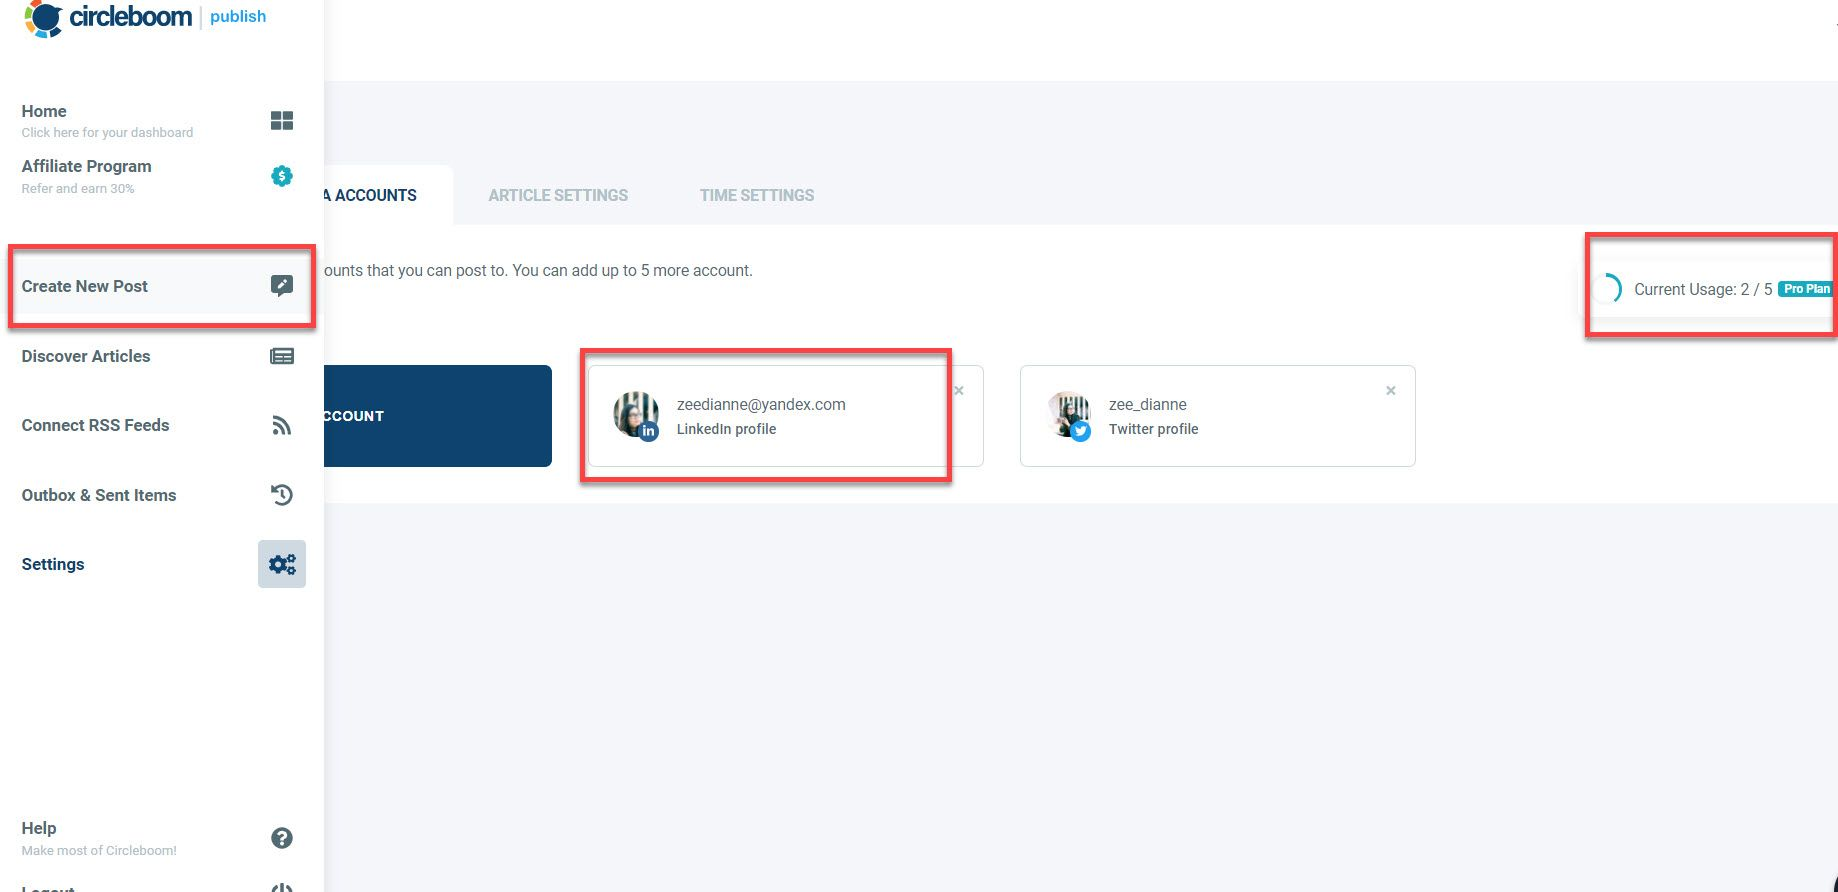 You may make a post for each of your Circleboom Publish-linked account using the Create New Post dashboard.